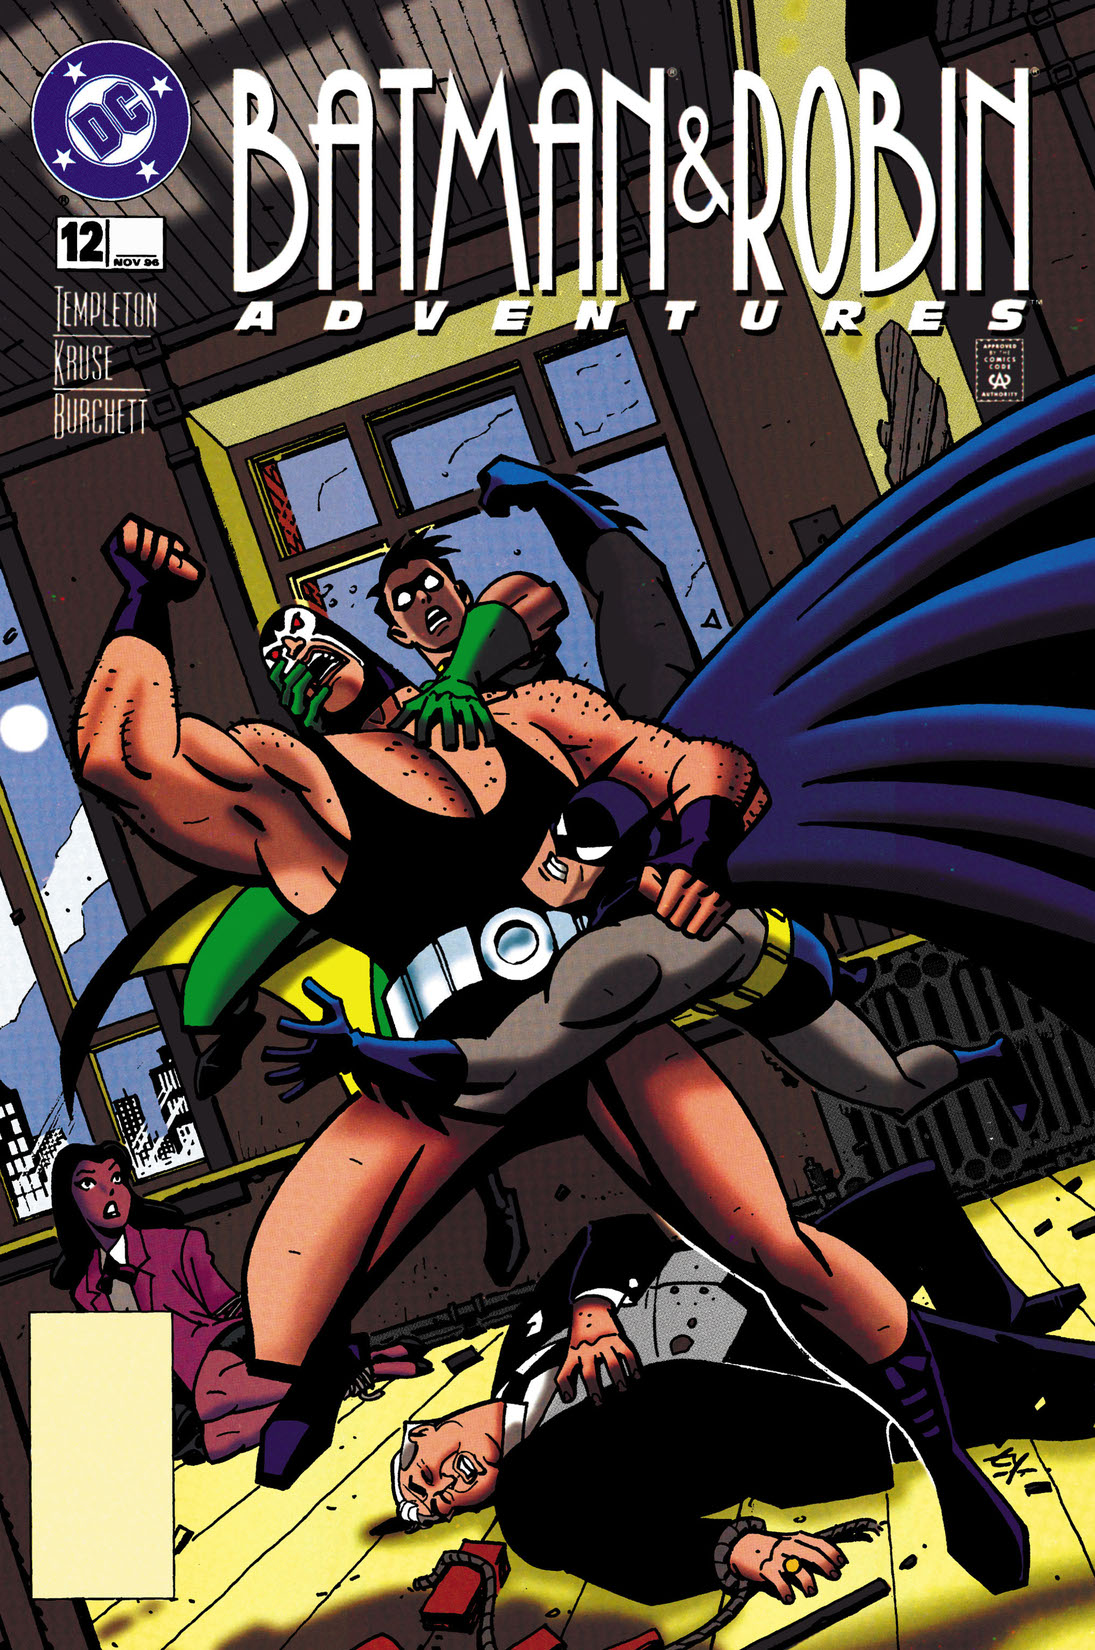 read the batman and robin adventures 1995 12 on dc universe